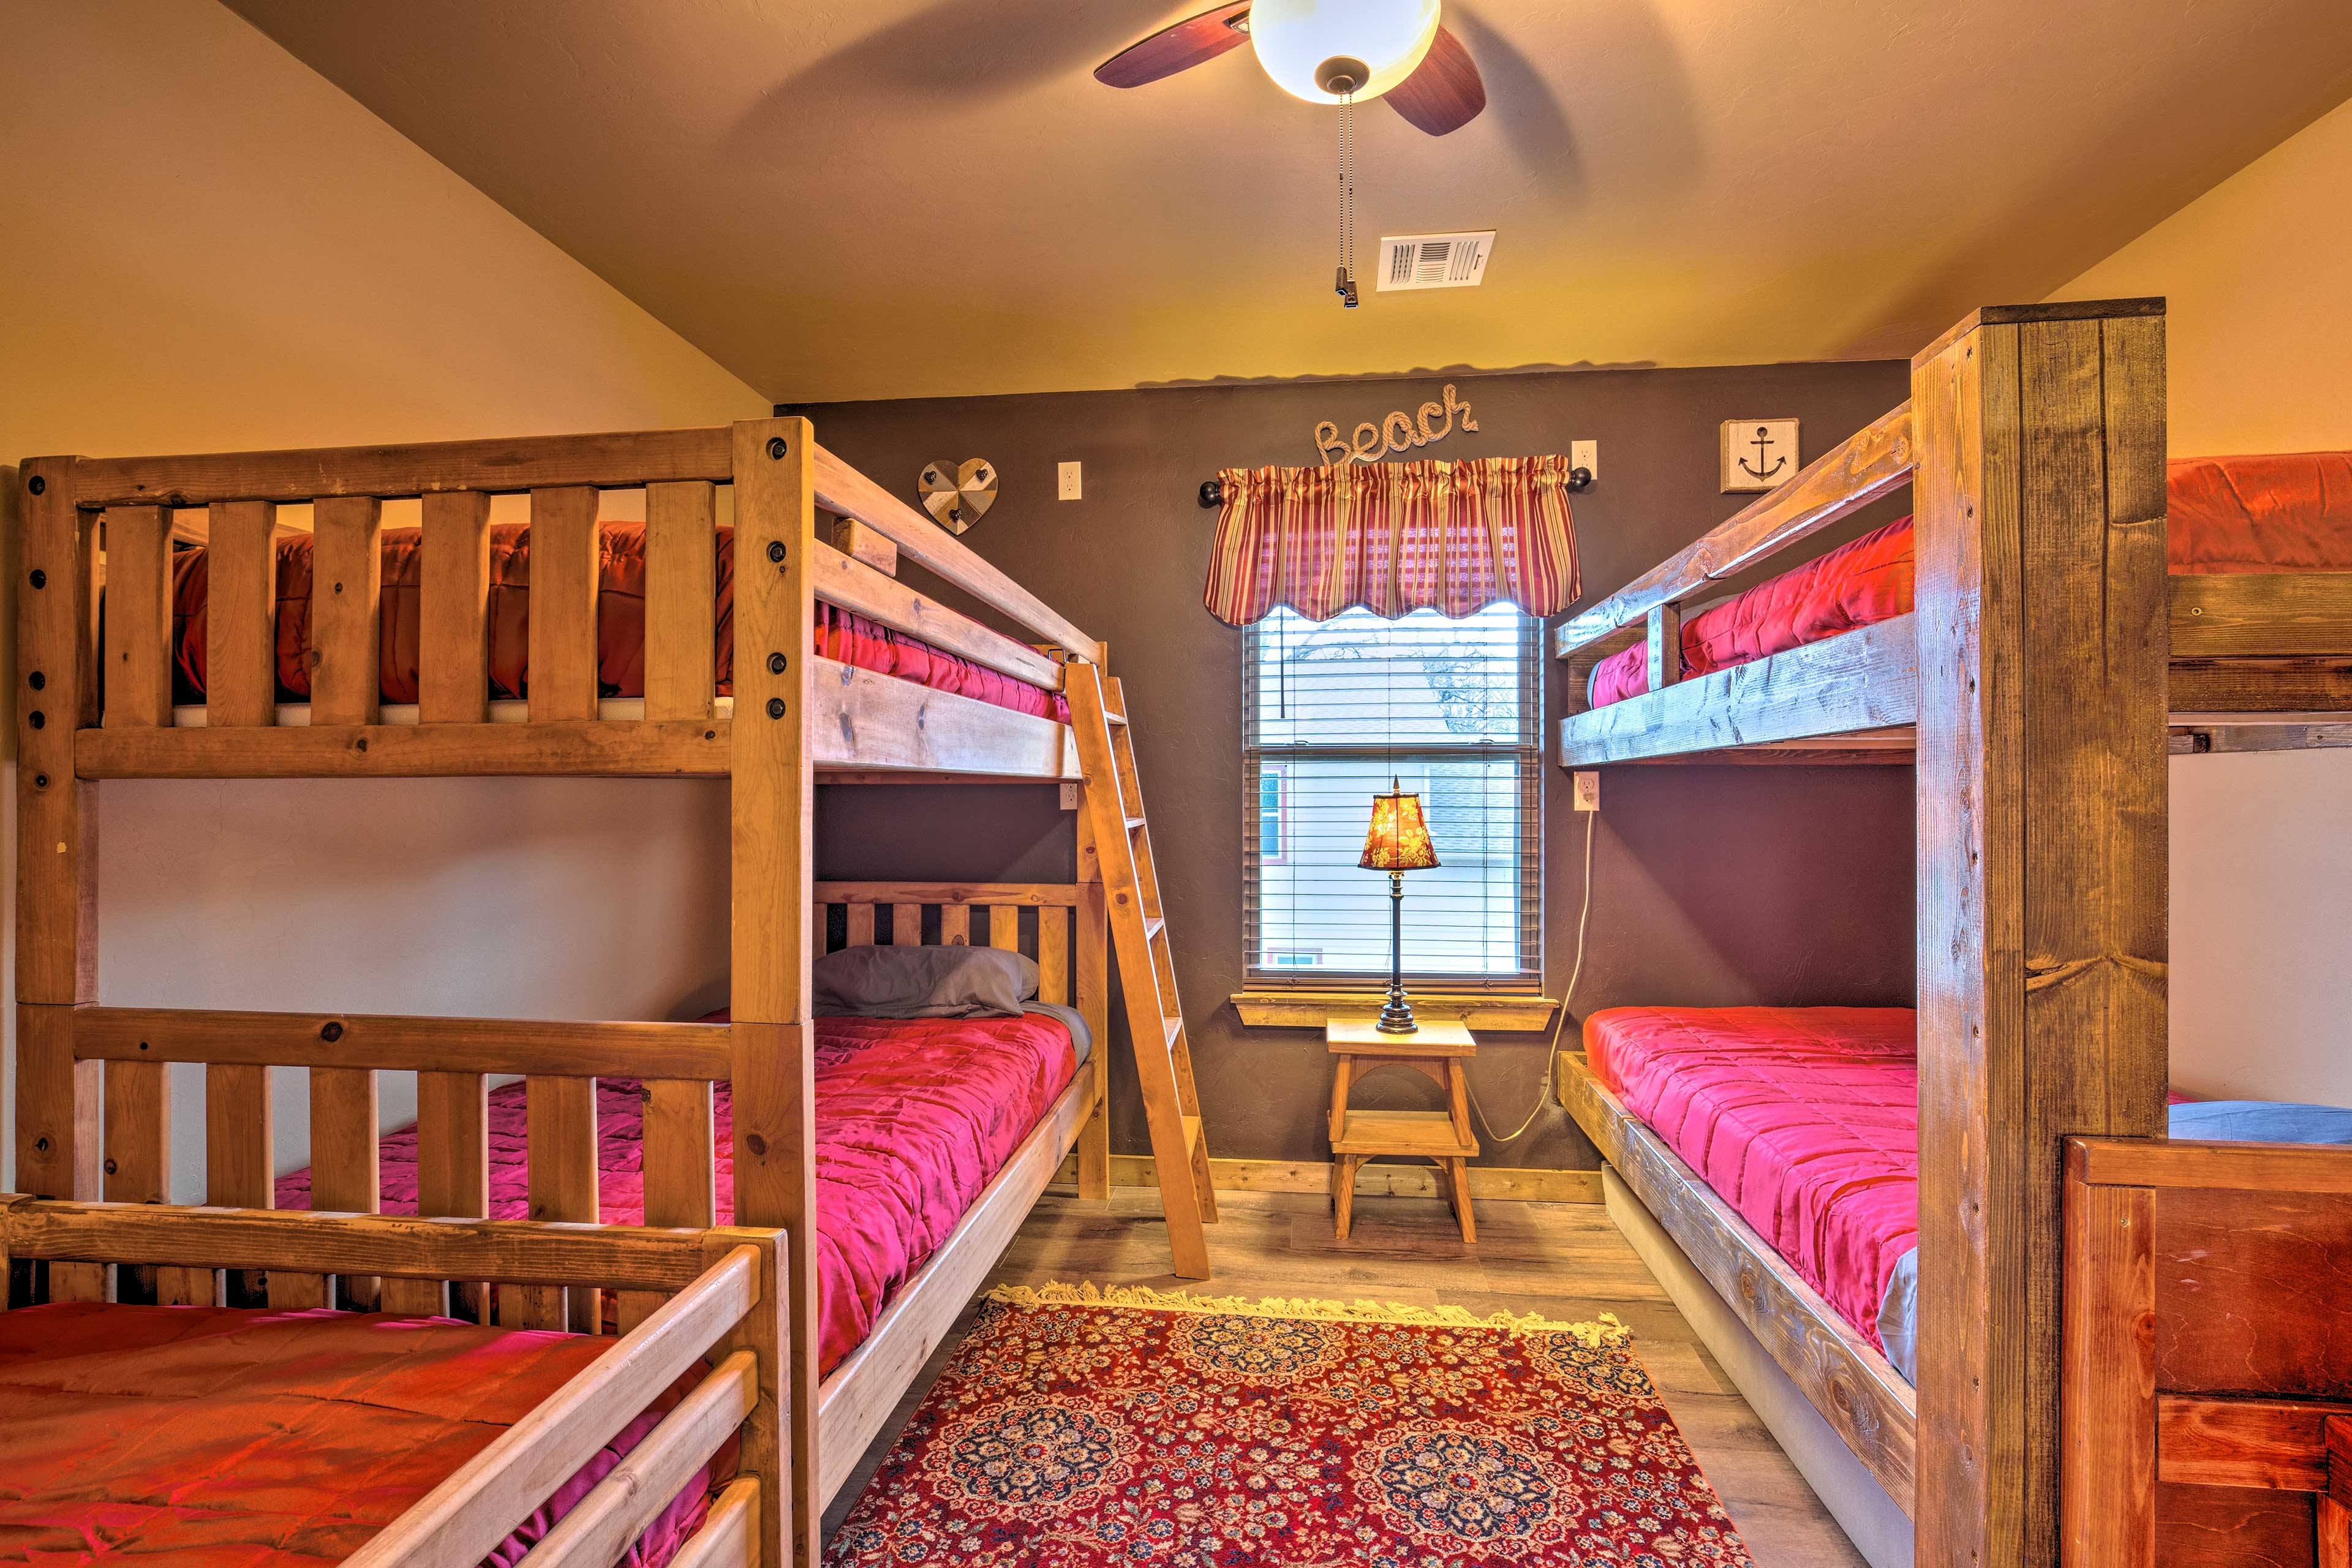 There are 7 twin bunk beds, total, in this room.